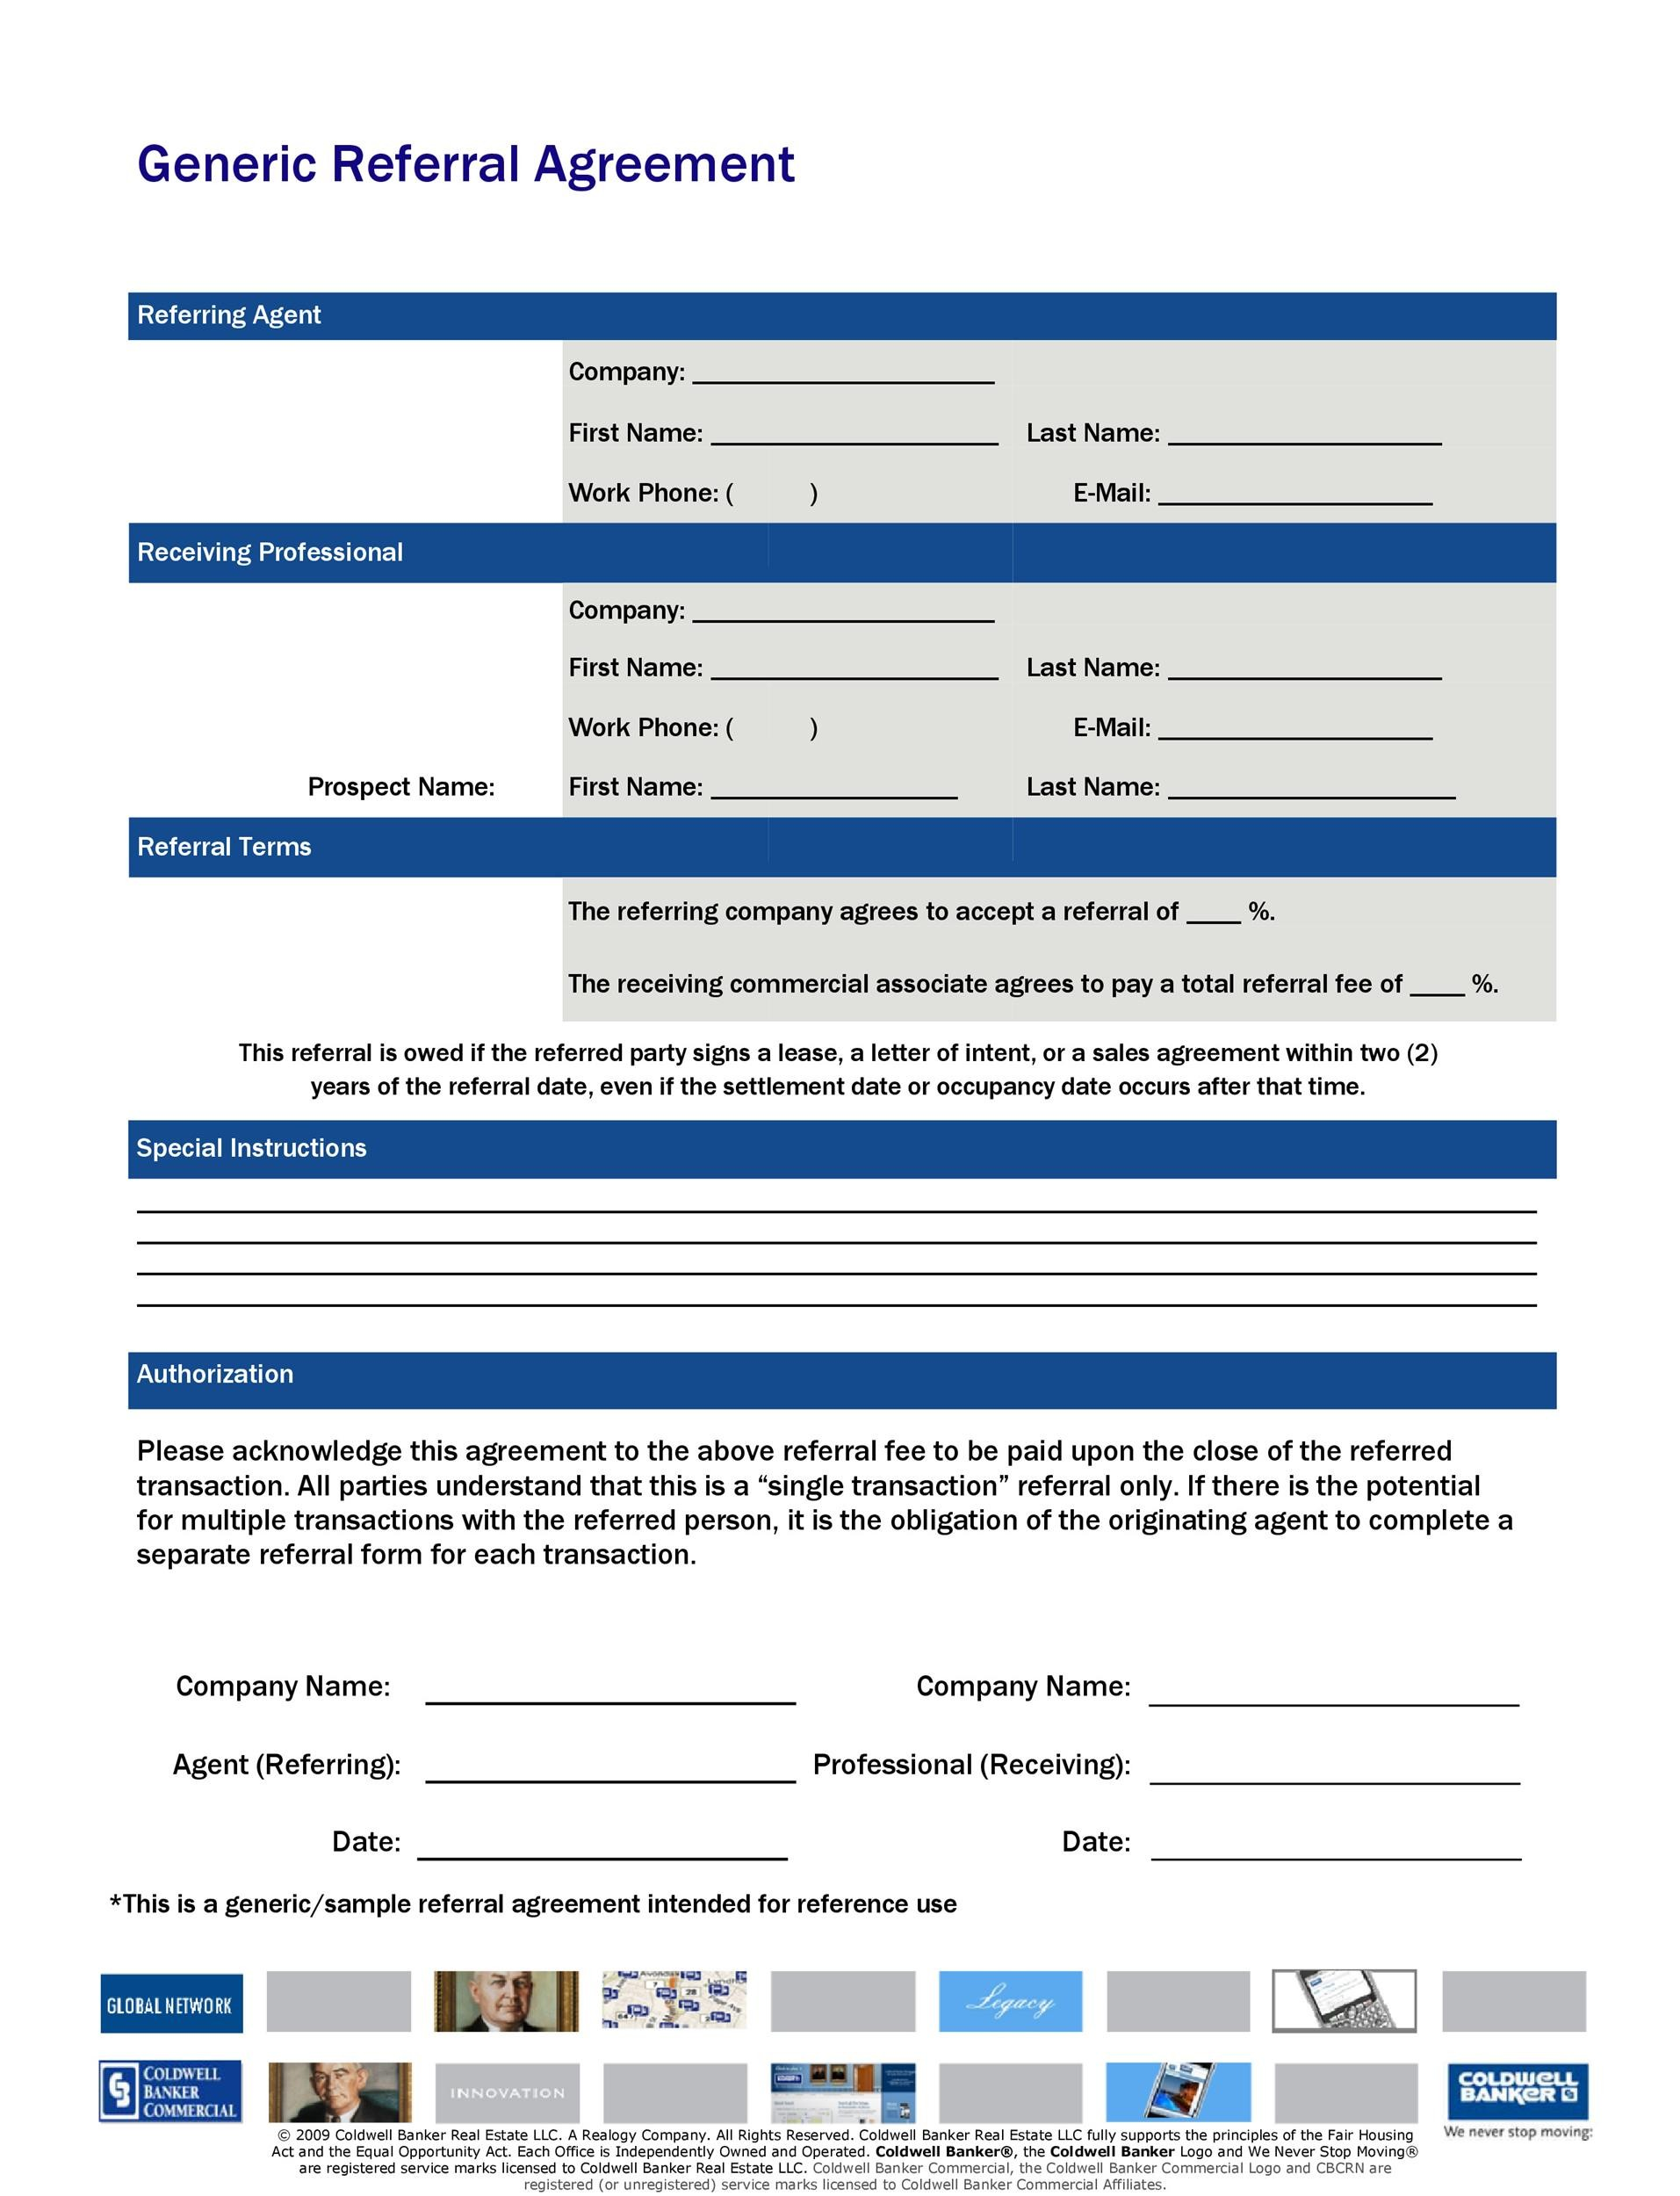 Free referral agreement template 32